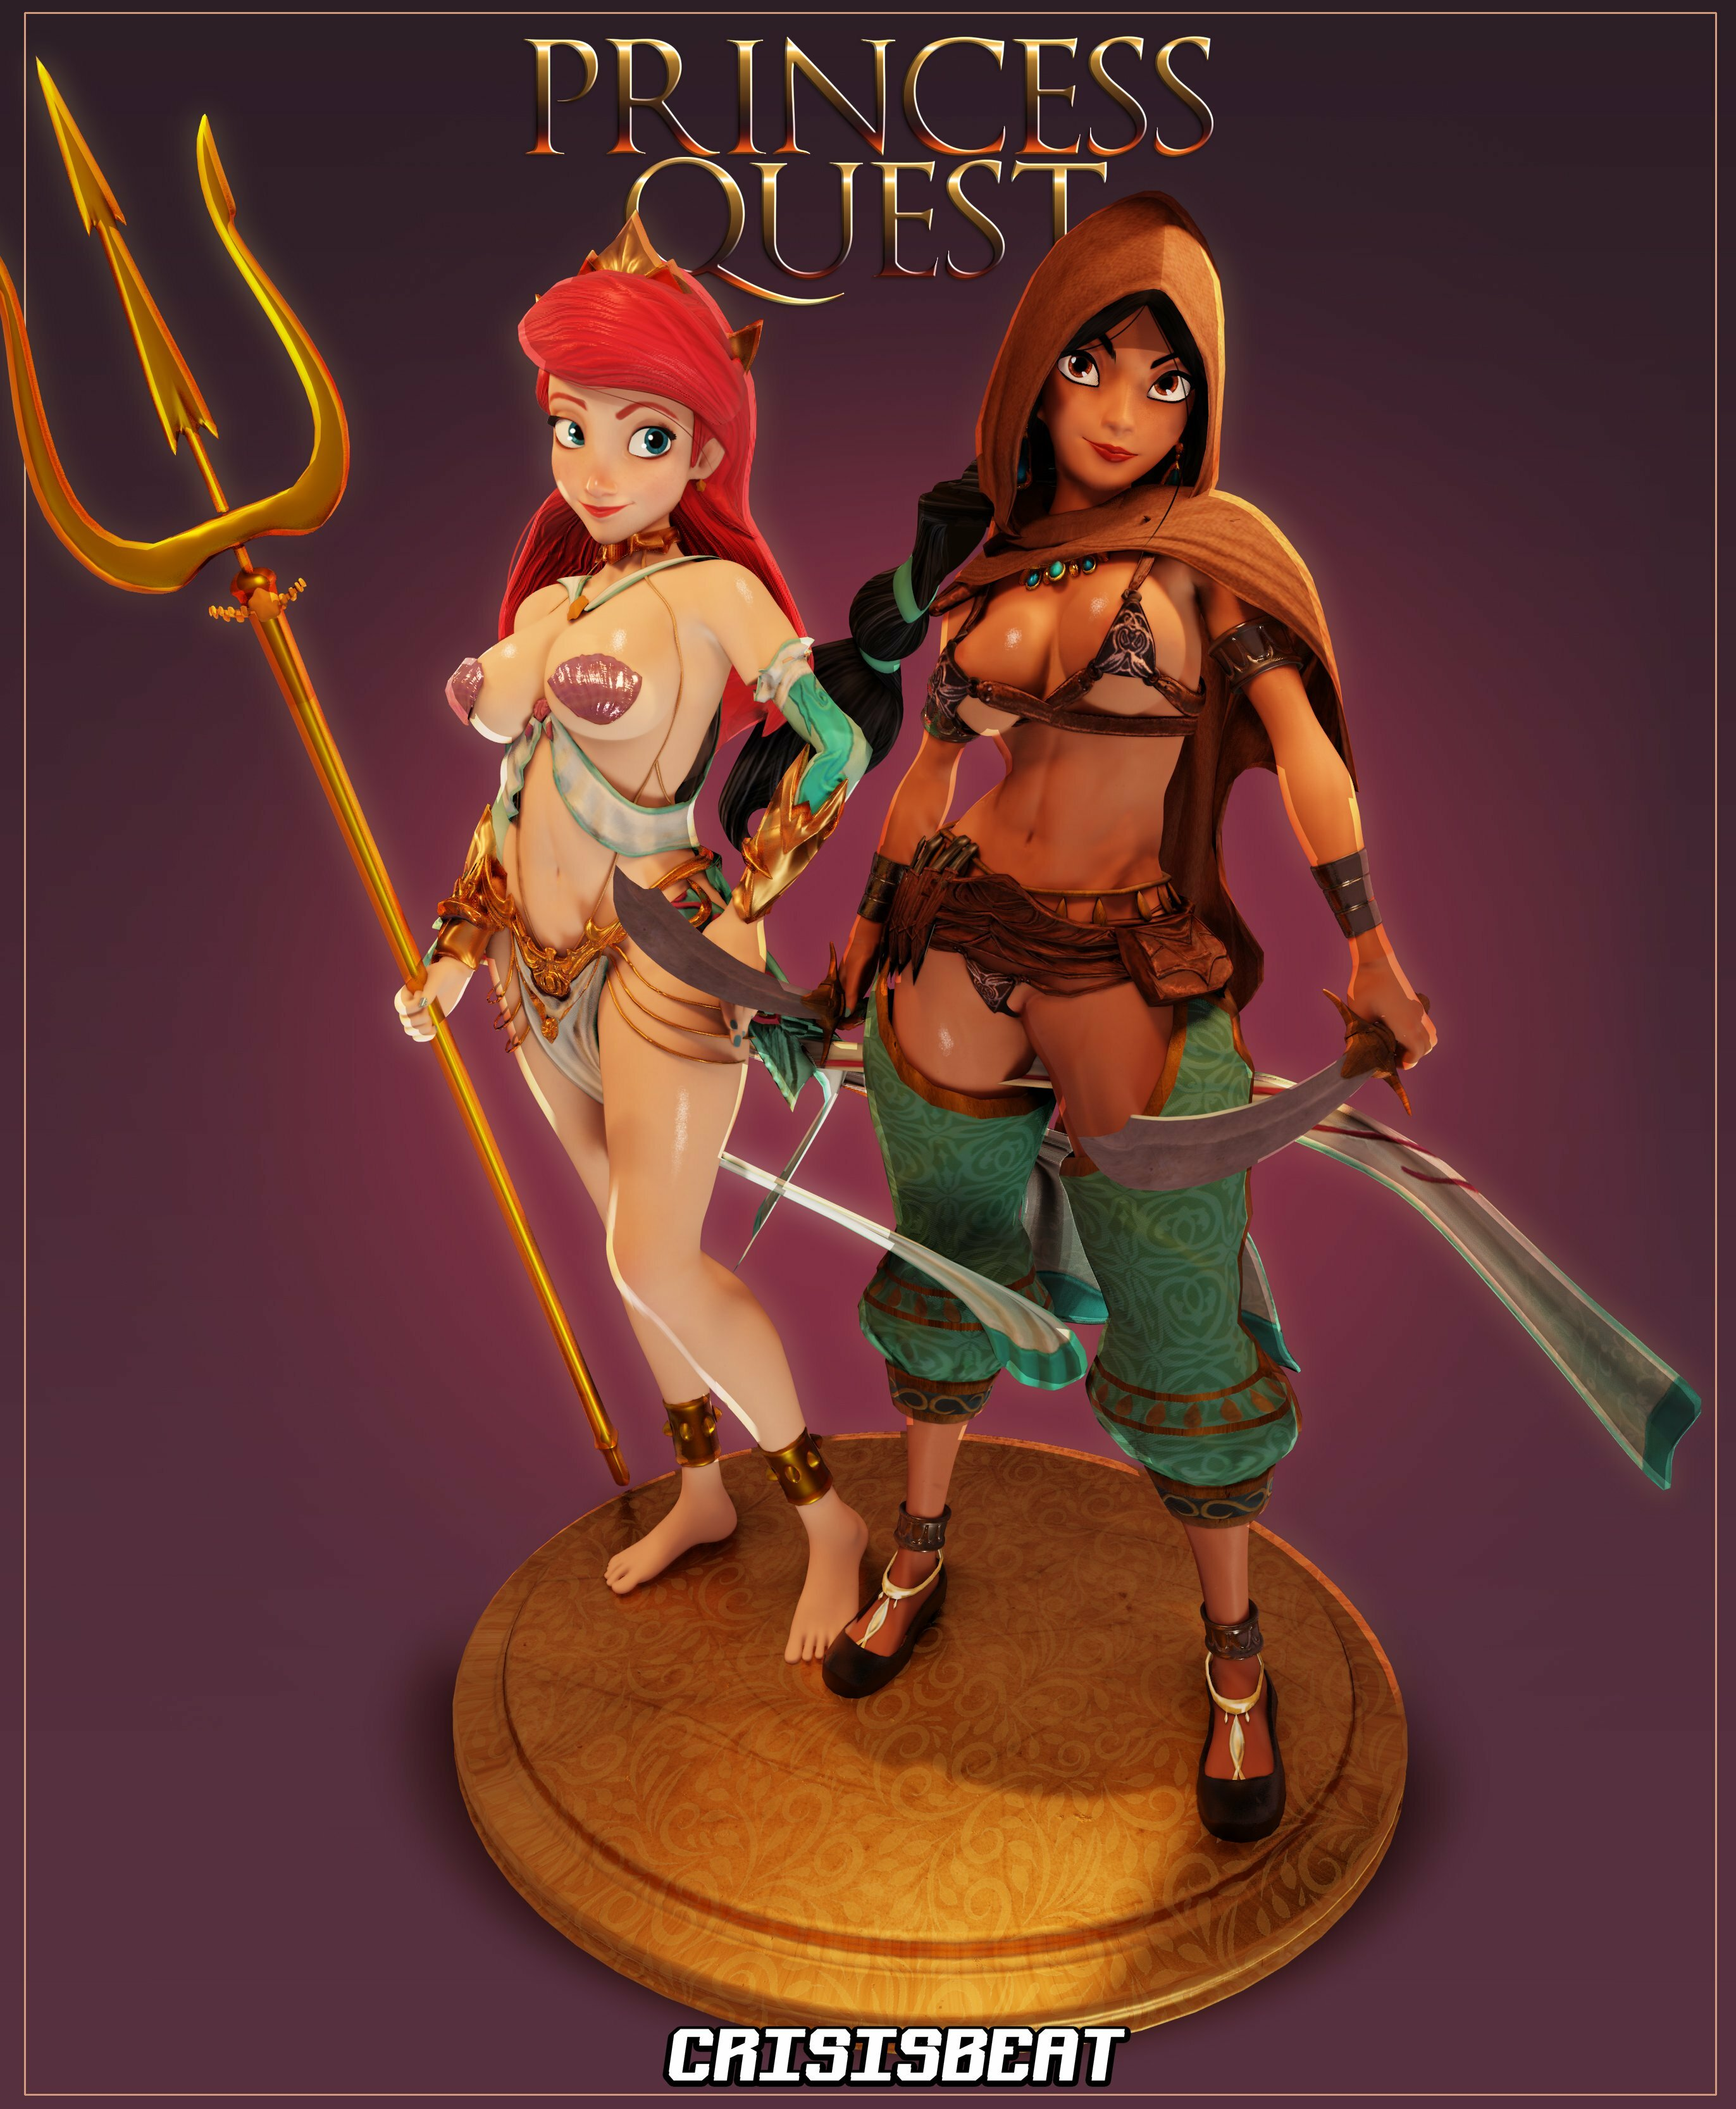 Princess Quest project on